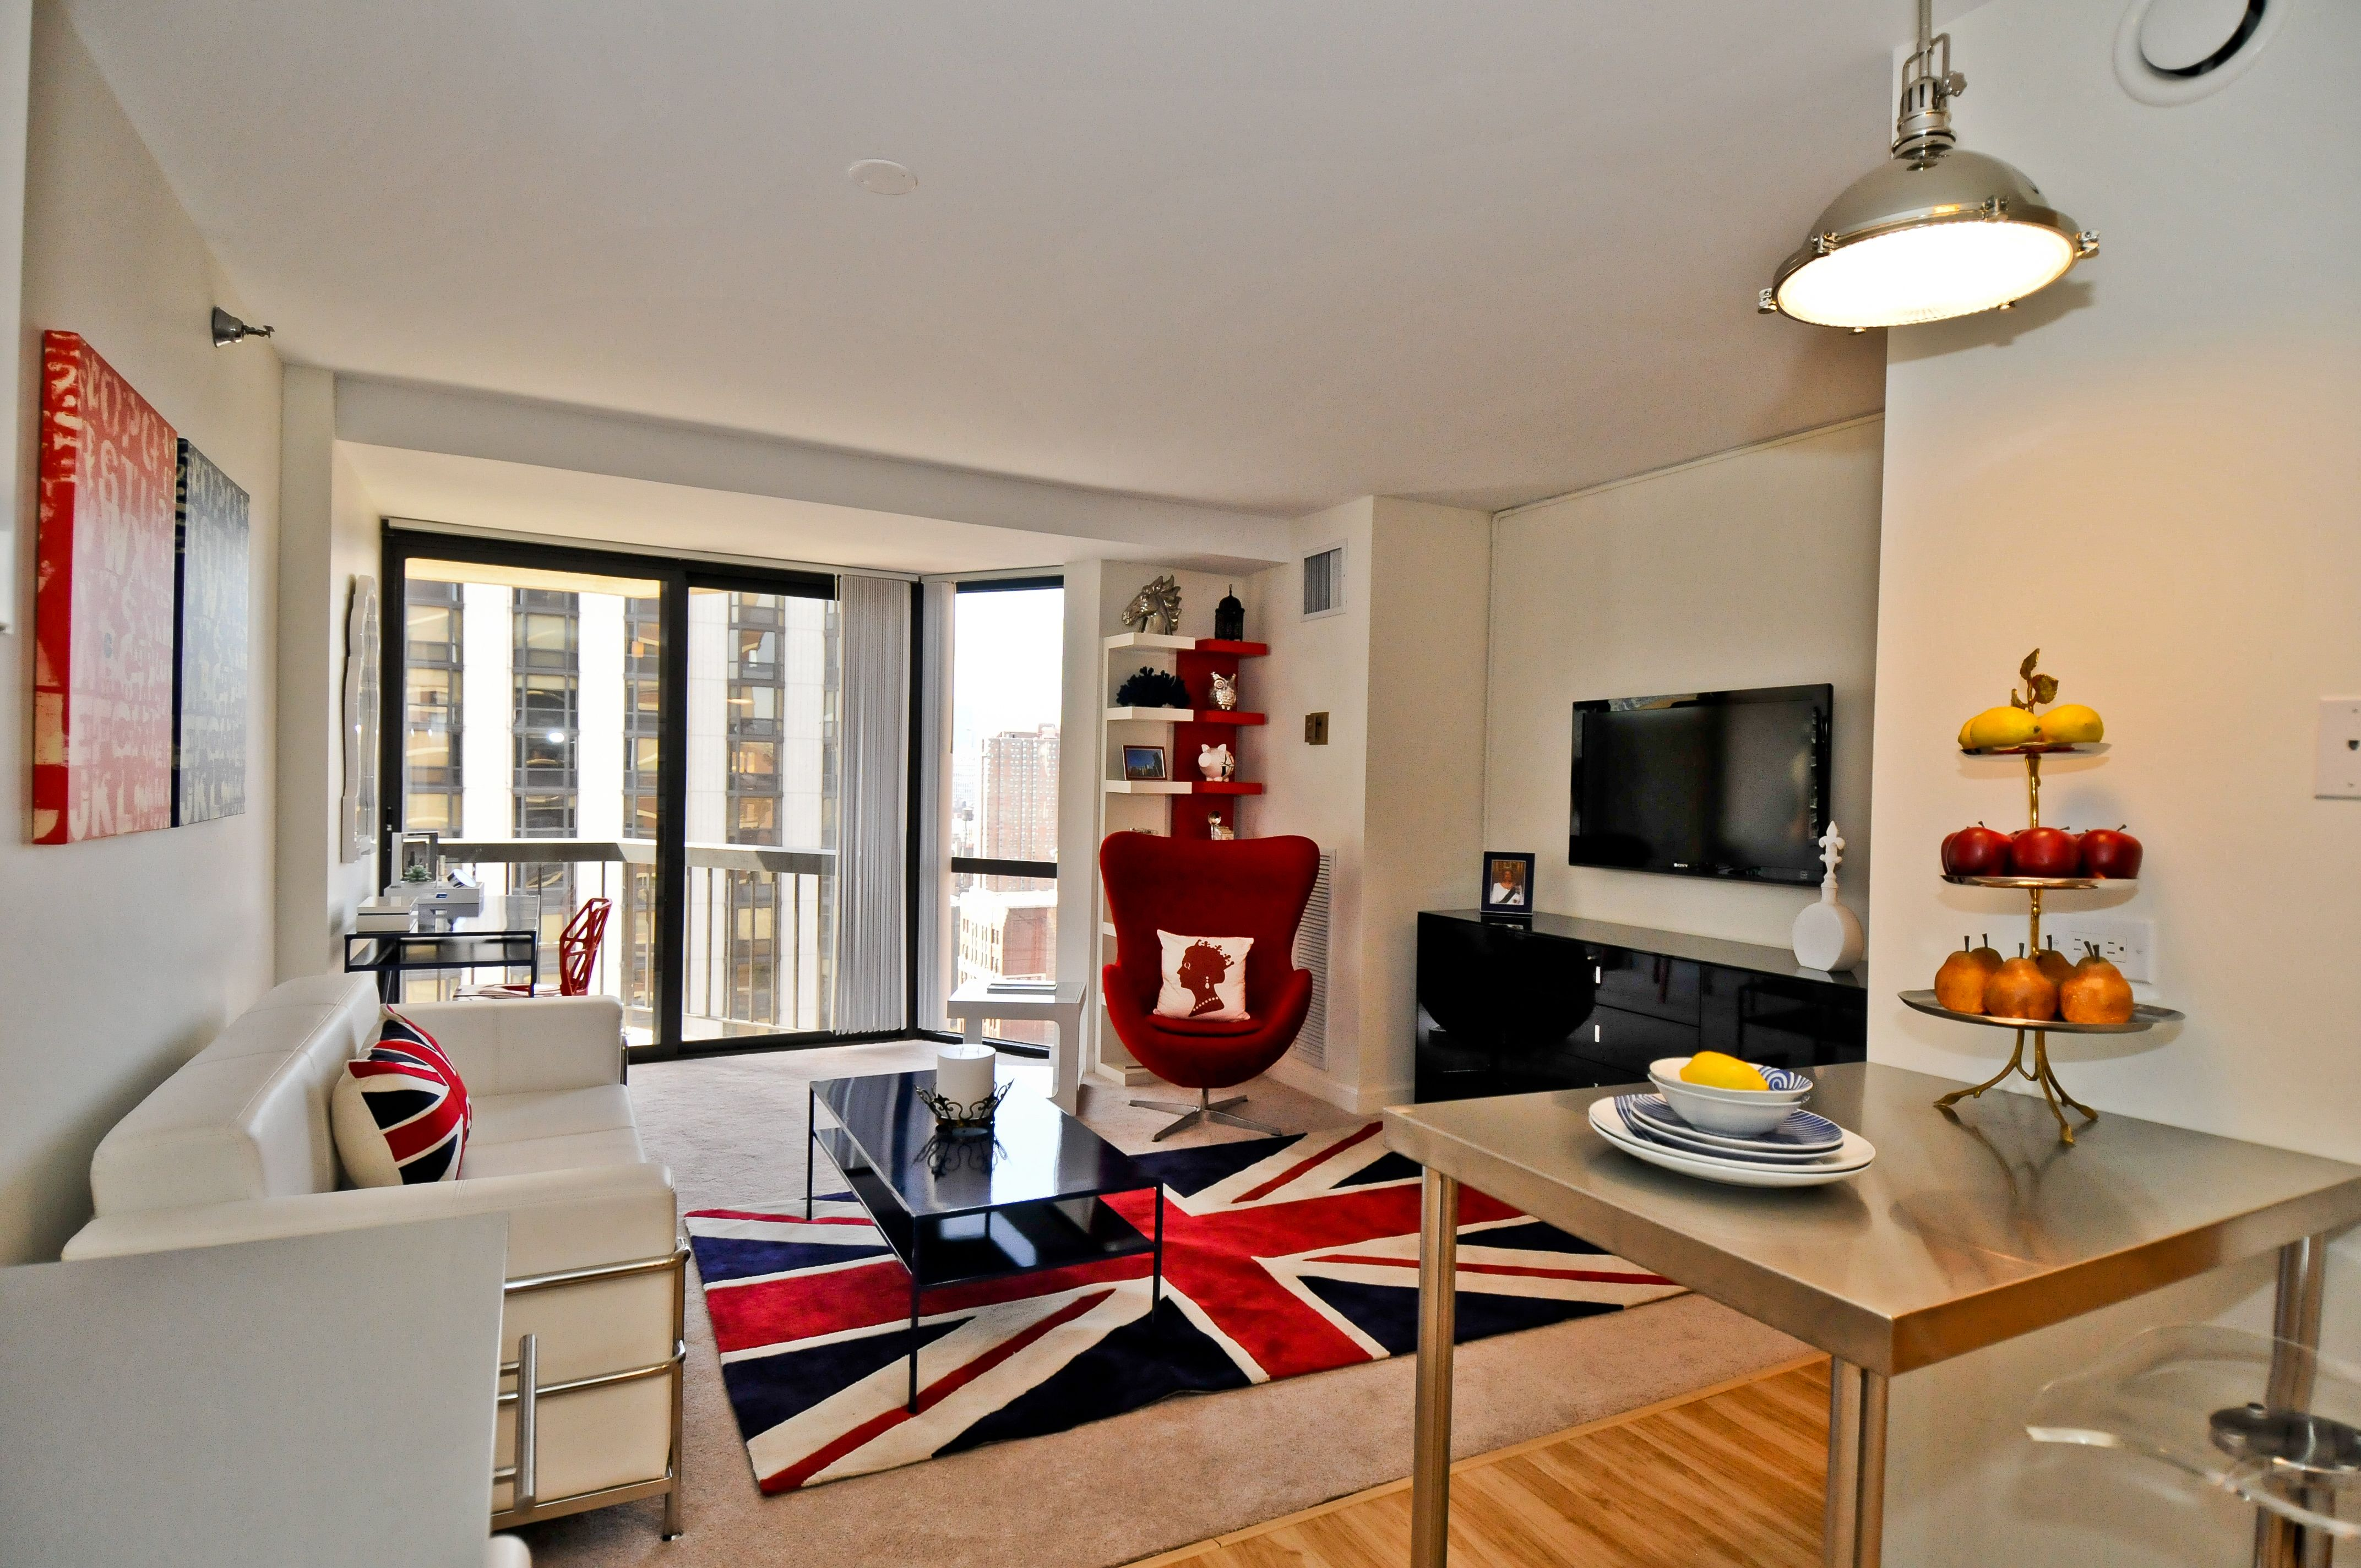 A Well Decorated Studio Apartment In Chicago S Gold Coast How Would You Design Yours Ppmapartments Chicagoapartments Home Well Decor Home Decor Kitchen